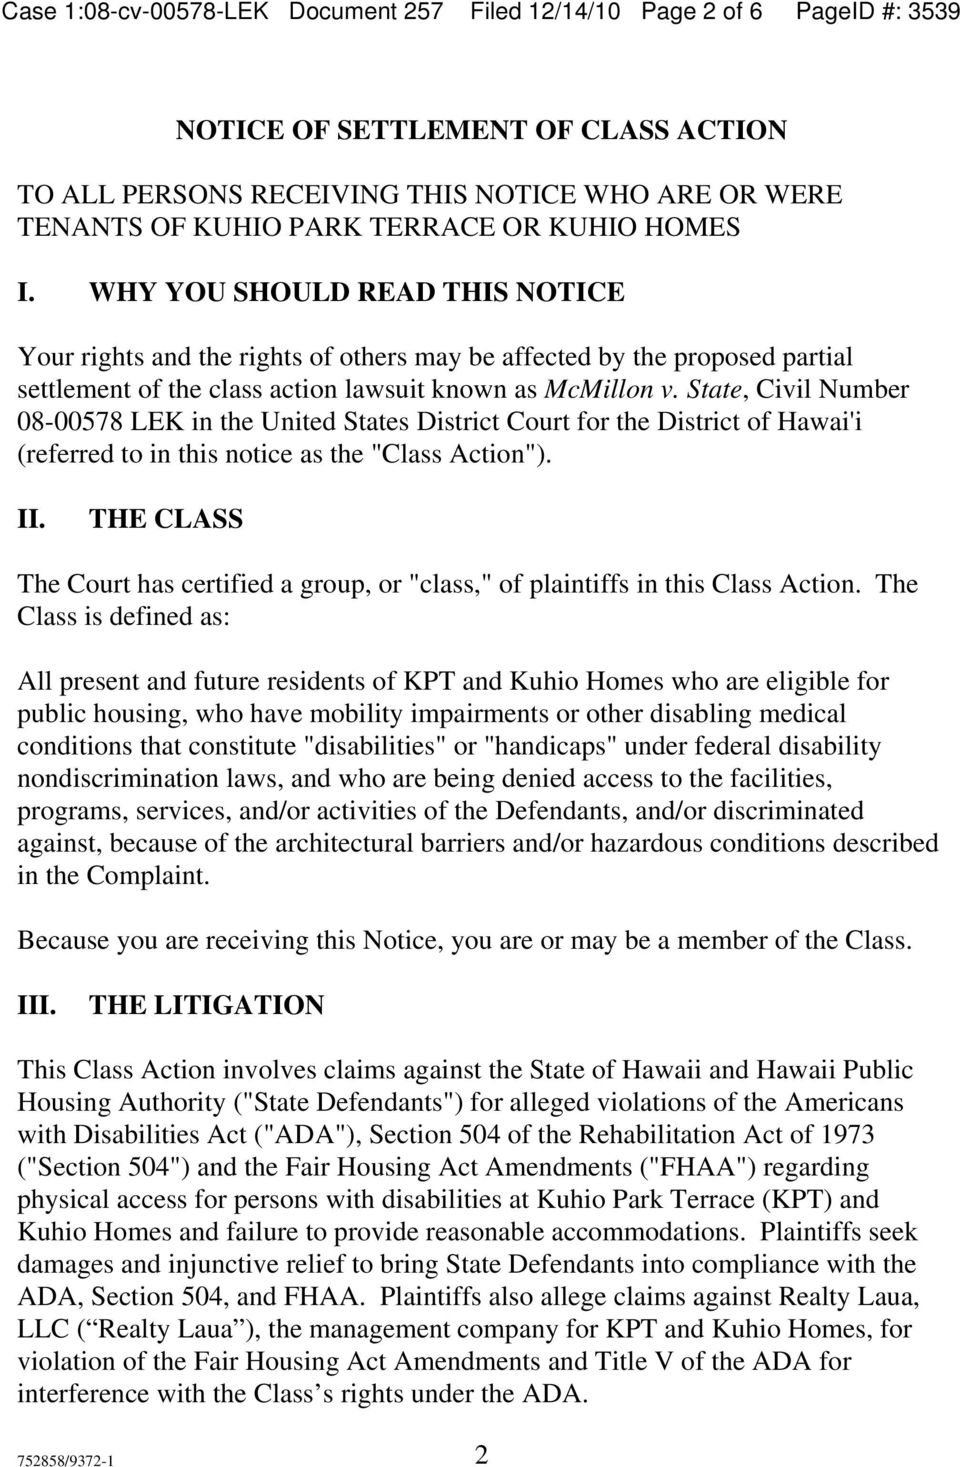 "State, Civil Number 08-00578 LEK in the United States District Court for the District of Hawai'i (referred to in this notice as the ""Class Action"". II."